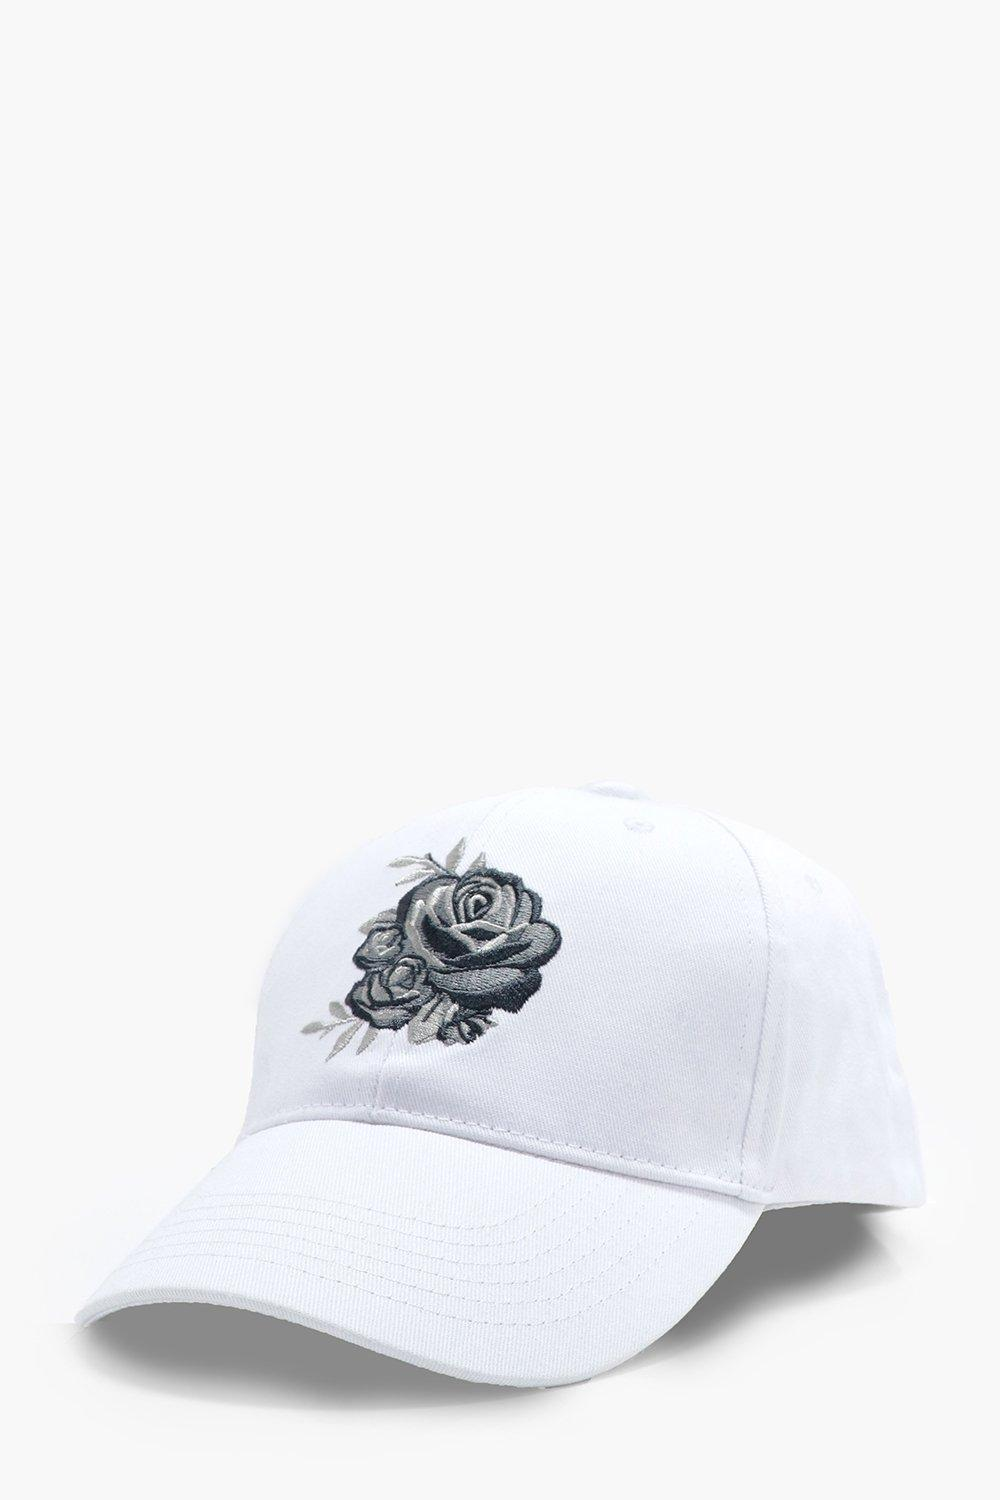 Rose Embroidered Baseball Cap - white - Silver Ros